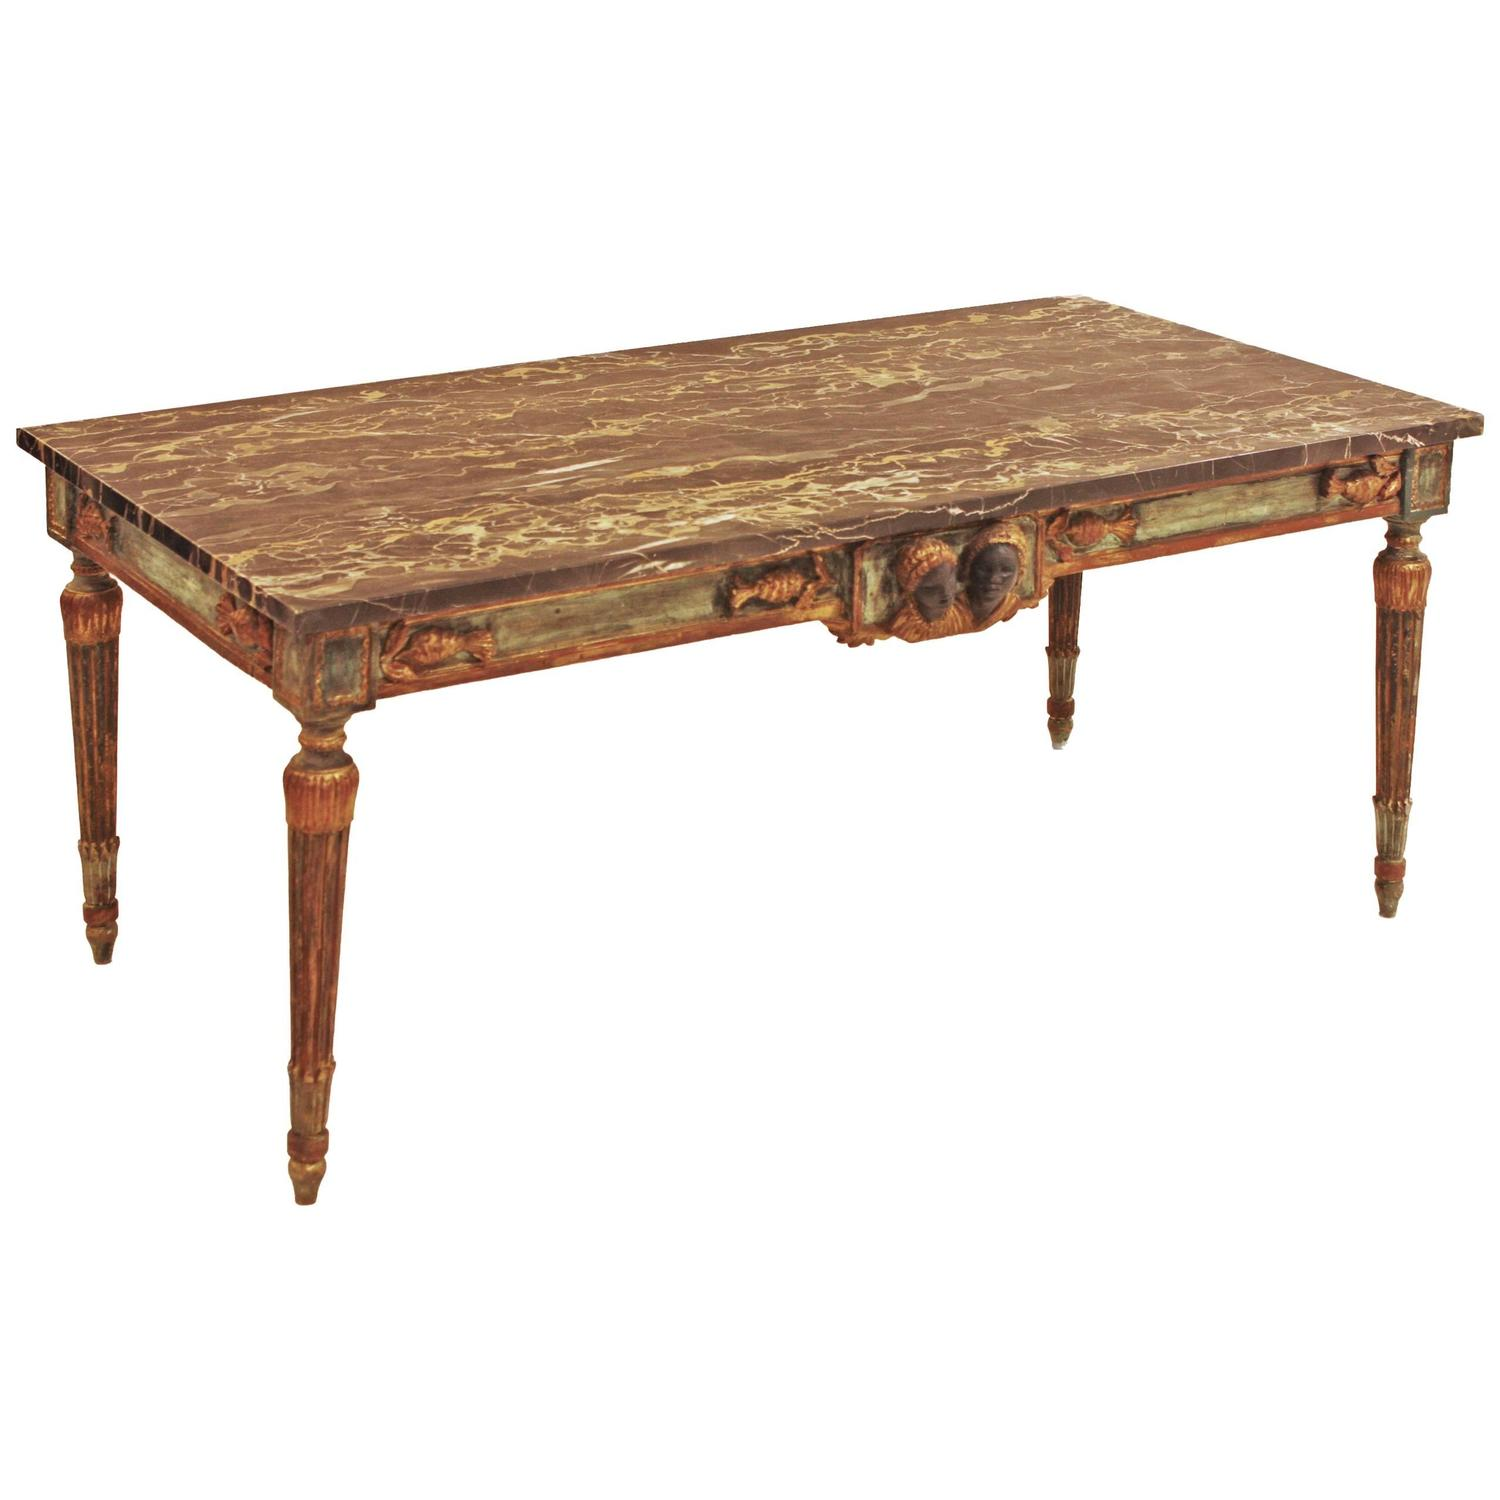 French Gilt Coffee Table: French Painted And Parcel Gilt Neoclassical Style Marble-Top Coffee Table For Sale At 1stdibs